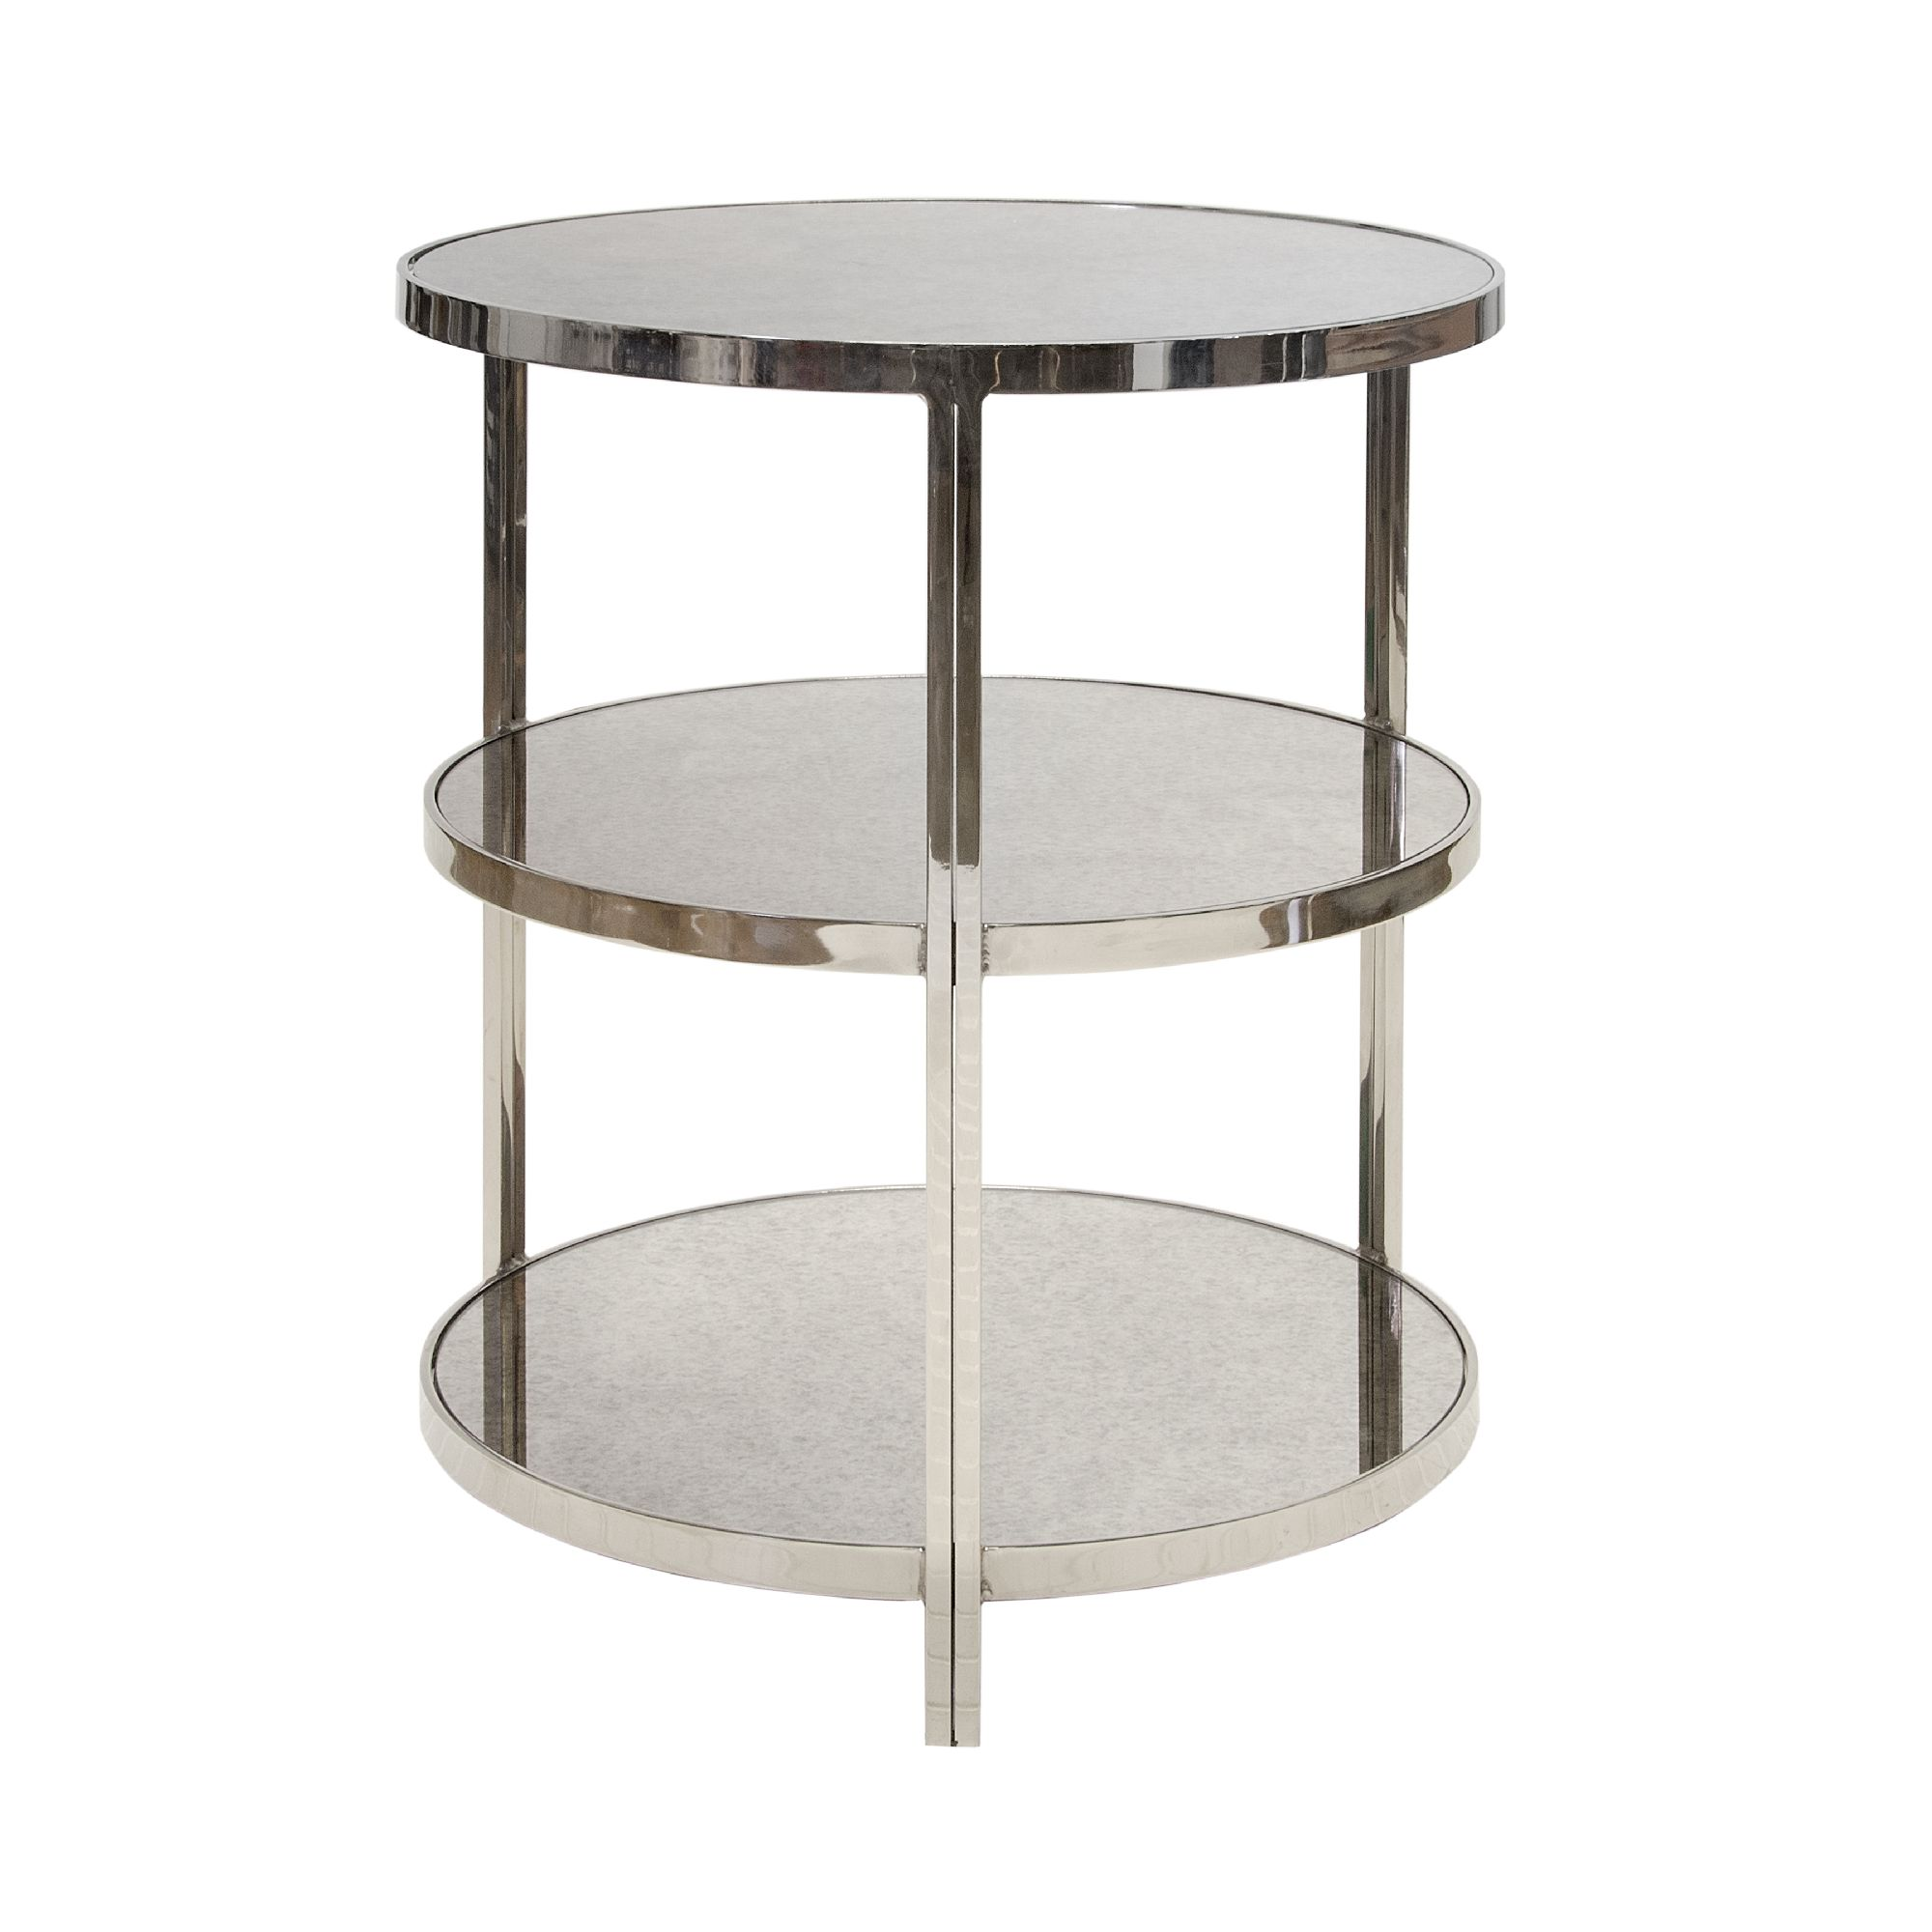 Worlds Away Audrey Nickel Plated Three Tier Side Table Glass Shelves Table Round Side Table